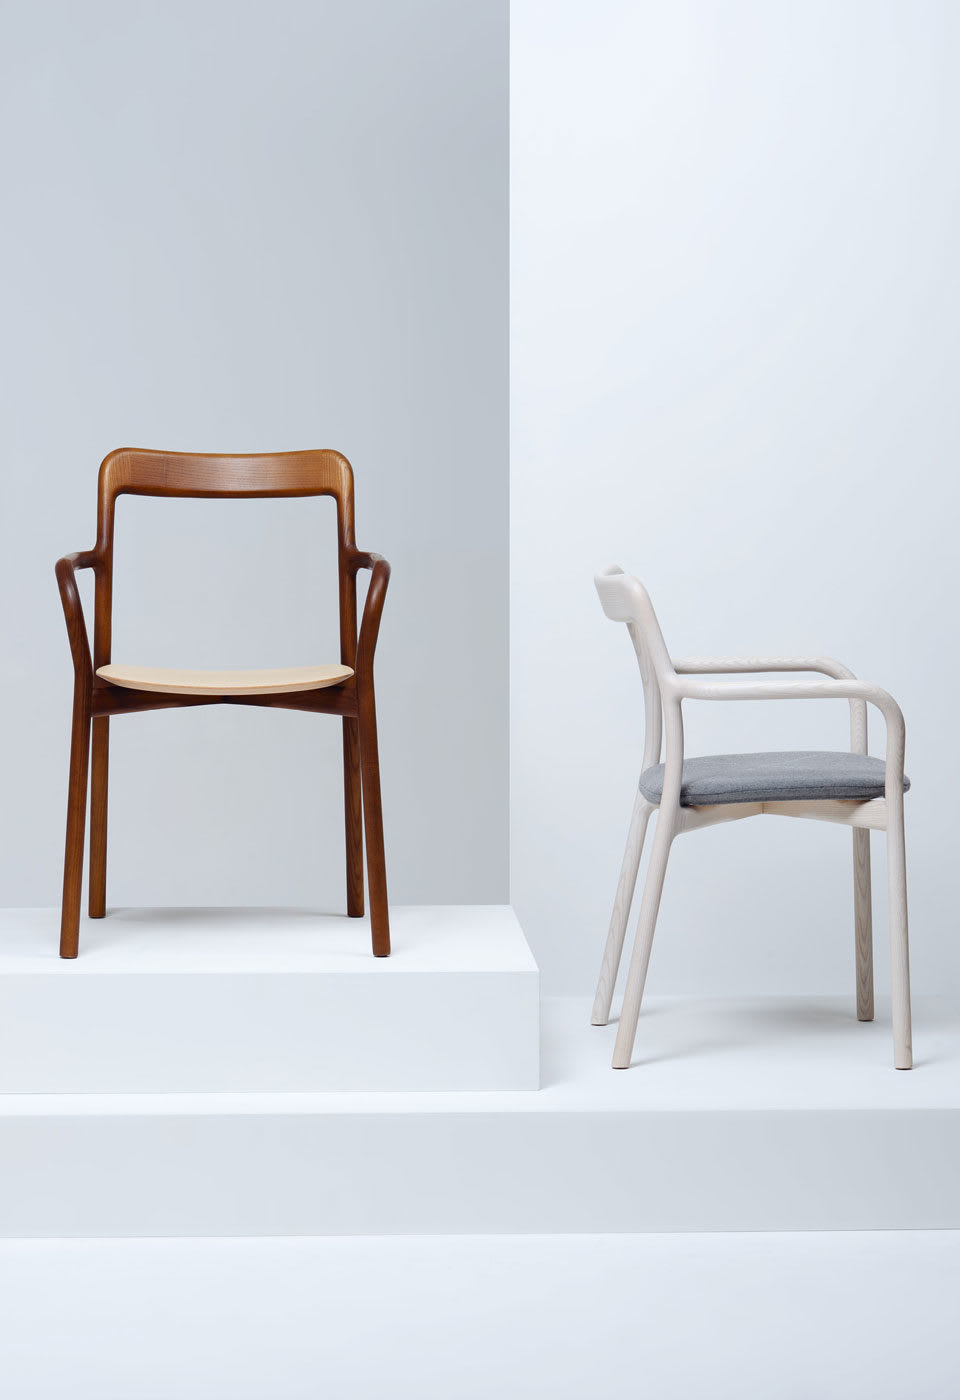 Chairs by Mattiazzi Italy seen at Rech by Alain Ducasse - Branca Chair